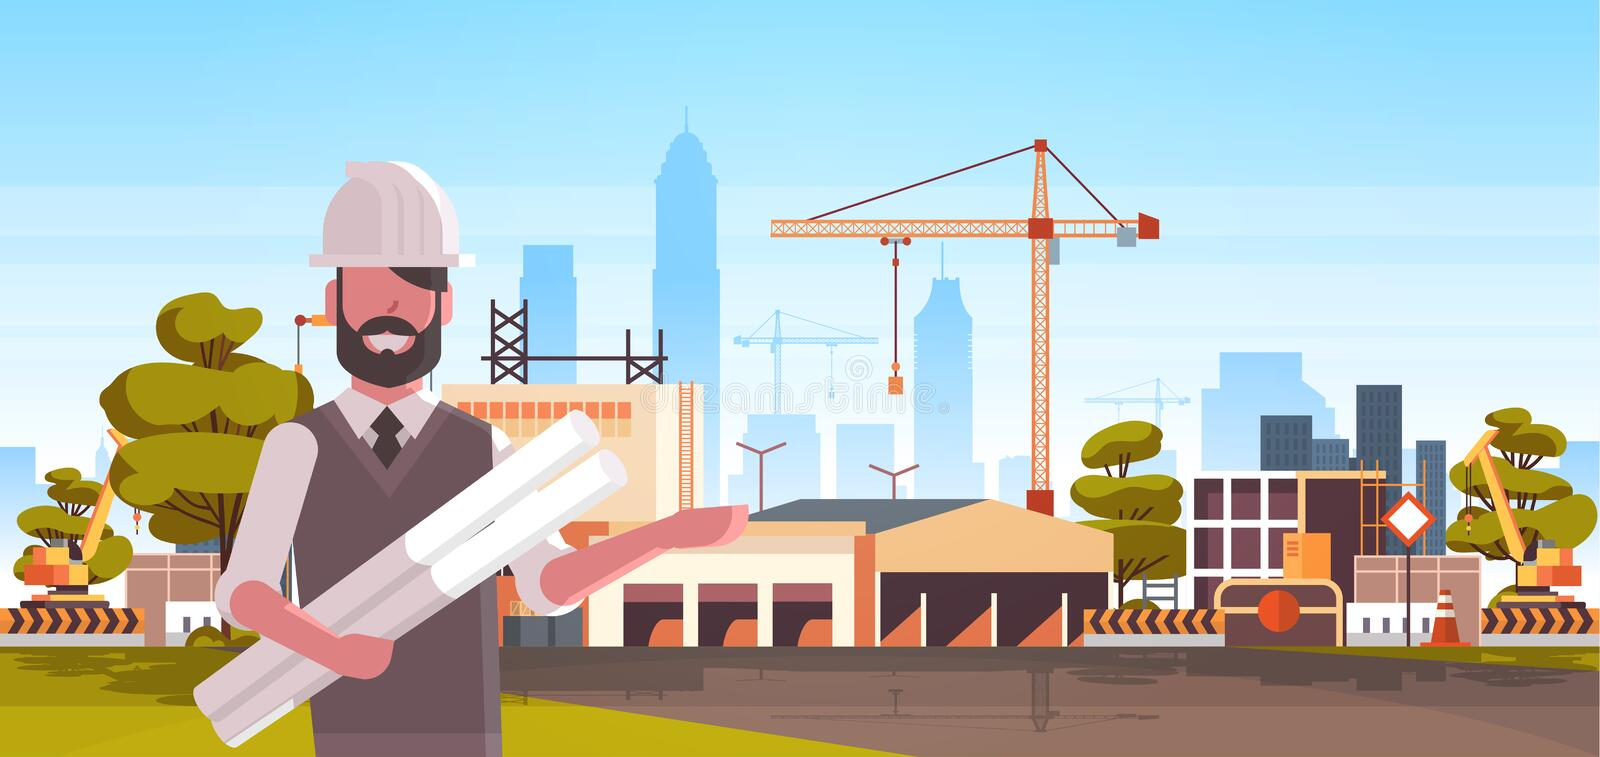 Man architect in helmet holding rolled up blueprints over city construction site tower cranes building residential. Buildings cityscape skyline background stock illustration